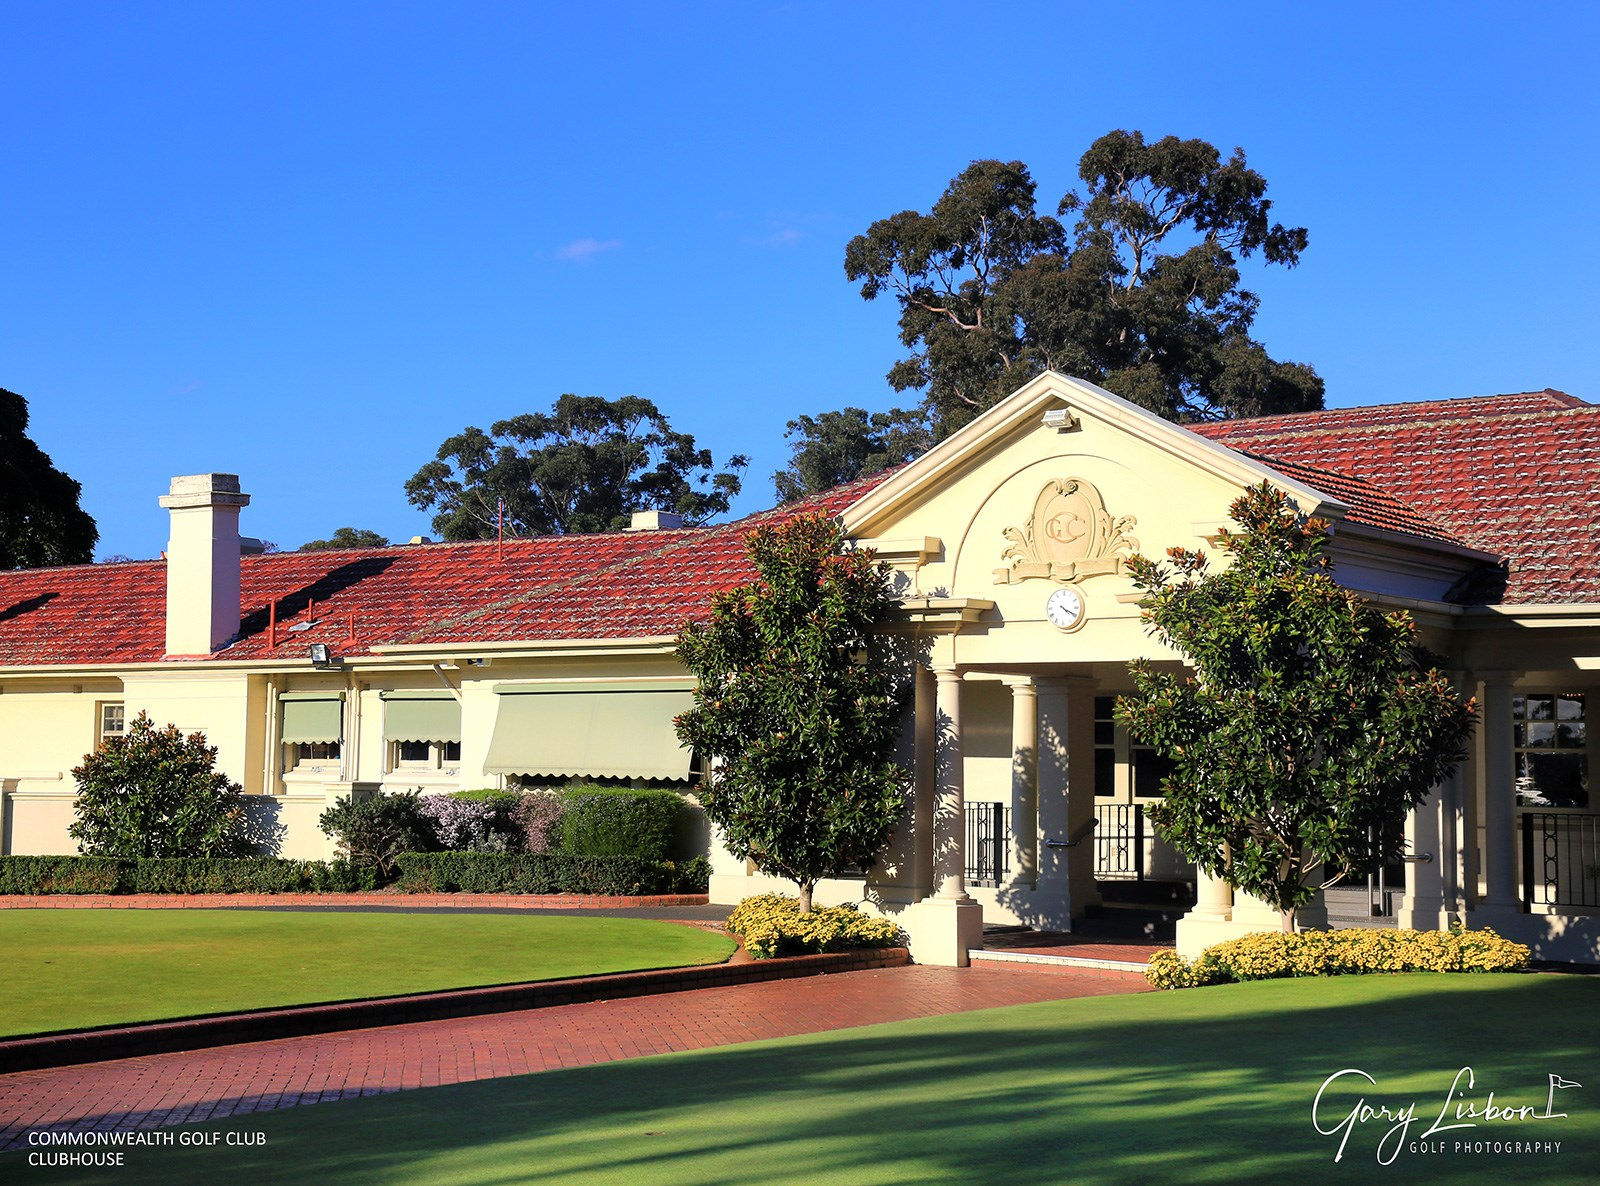 Commonwealth Golf Club Clubhouse